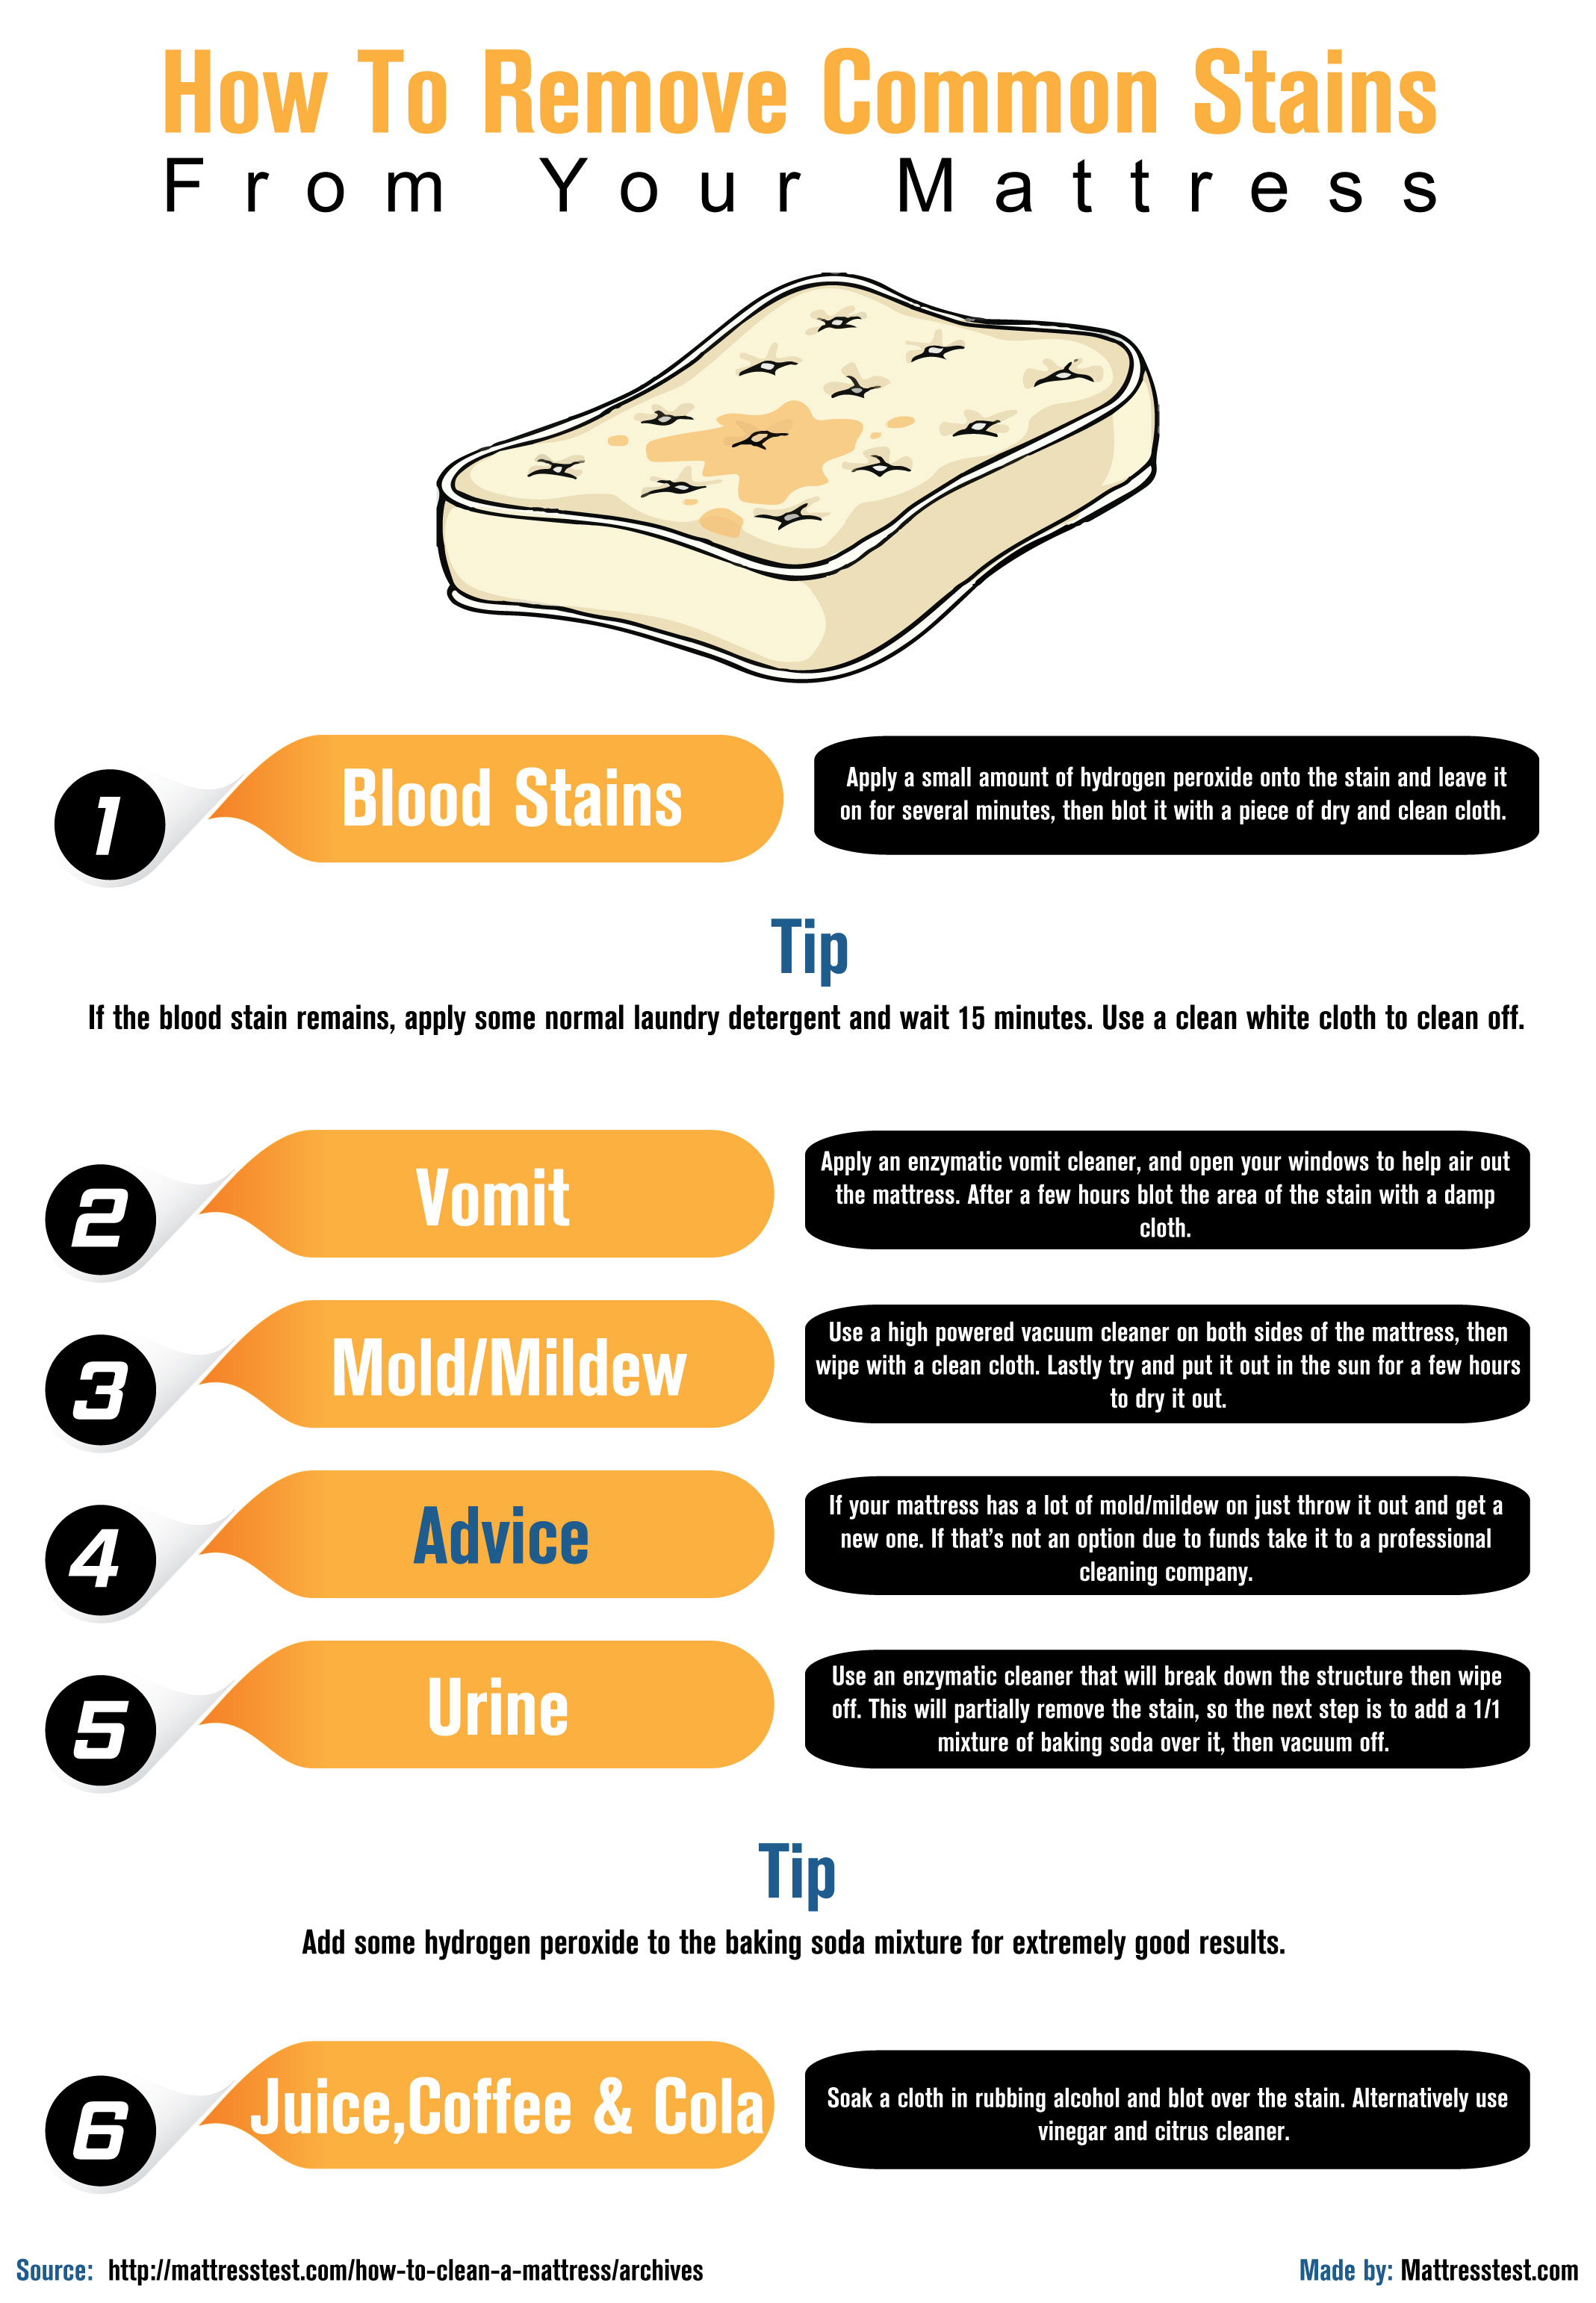 How To Remove Common Stains From Your Mattress